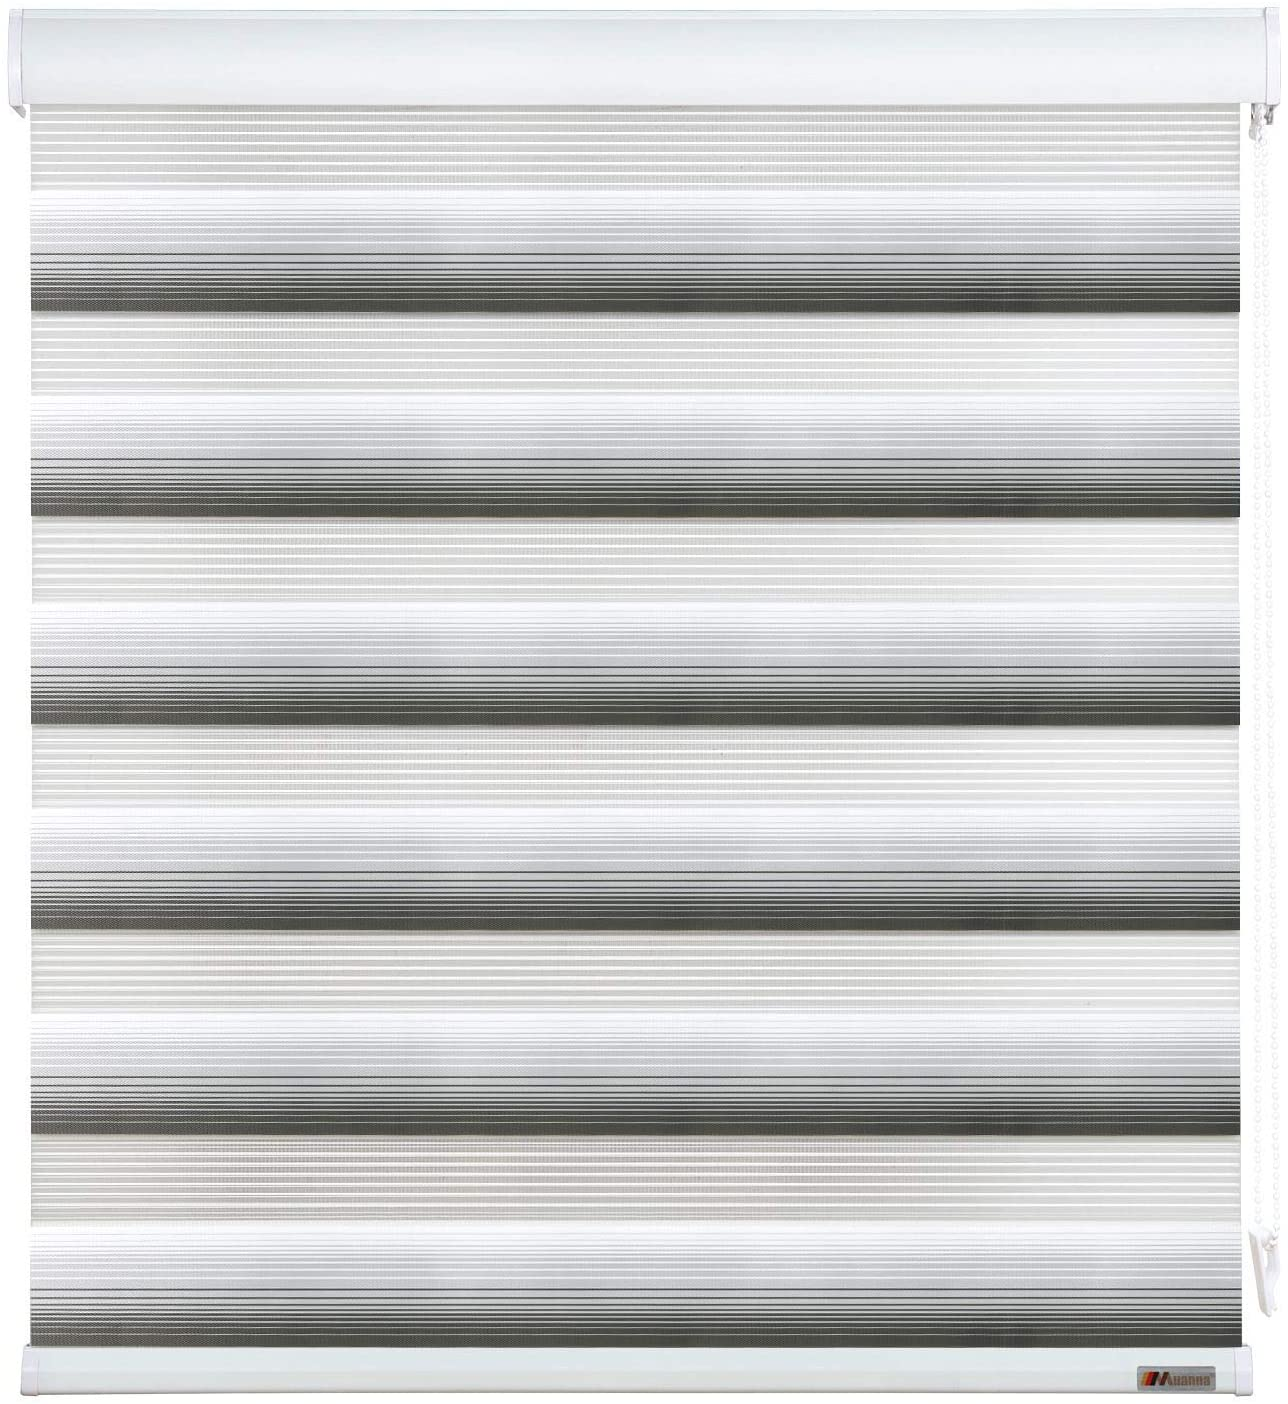 MUANNA Custom Cut to Size Zebra Roller Blinds, Dual Layer Shades, Sheer or Privacy Light Control, Day and Night Window Drapes, Grey Ombre, W:24.1-32 inch x H:88.1-98 inch